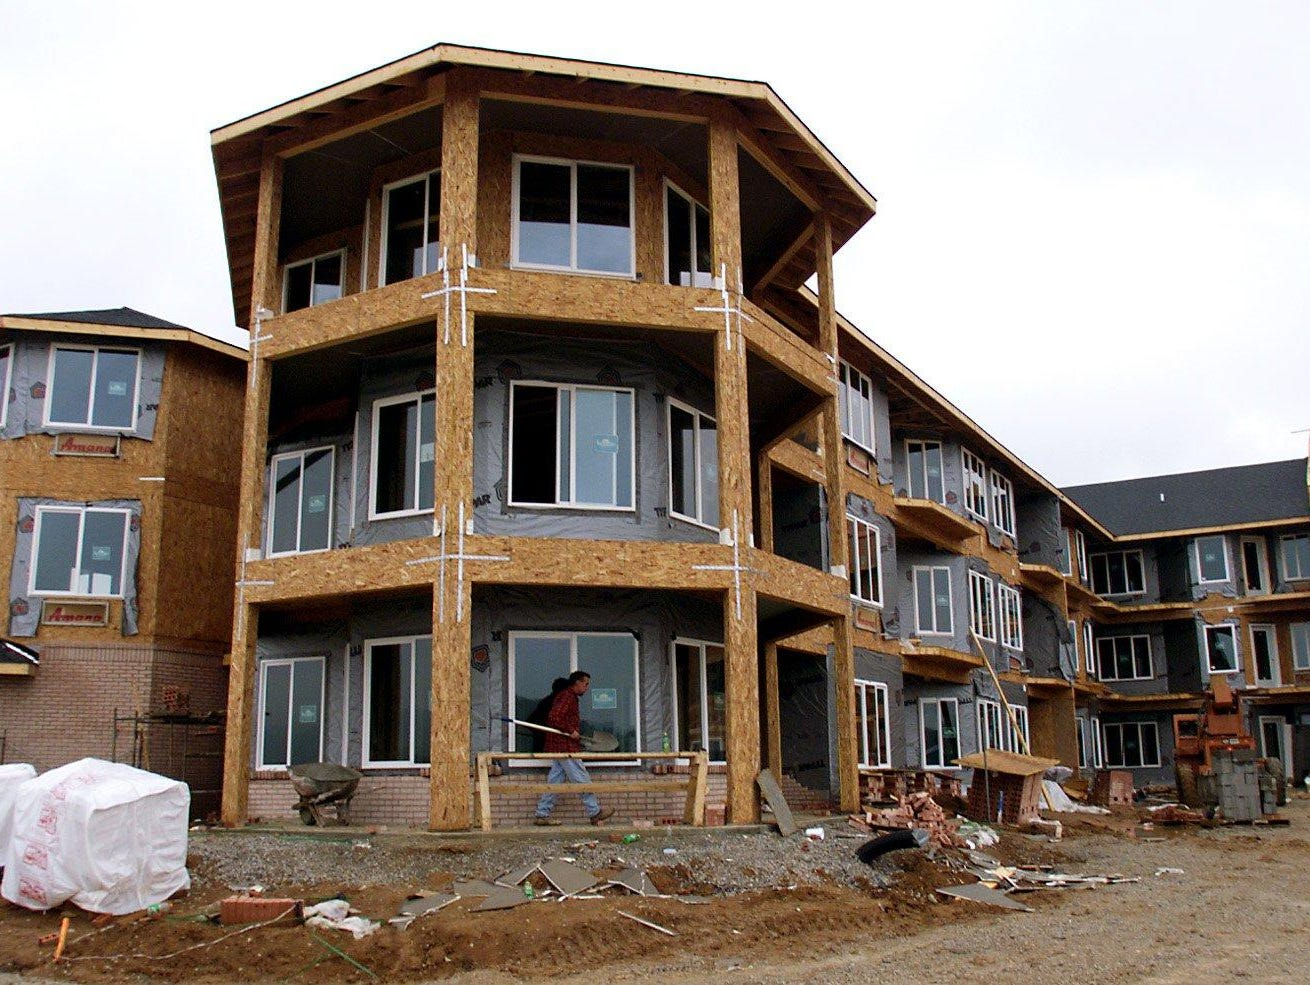 Construction on the Manor at Steeplechase, a three-story retirement community on Cool Springs Boulevard in Franklin, was completed in September 1999.